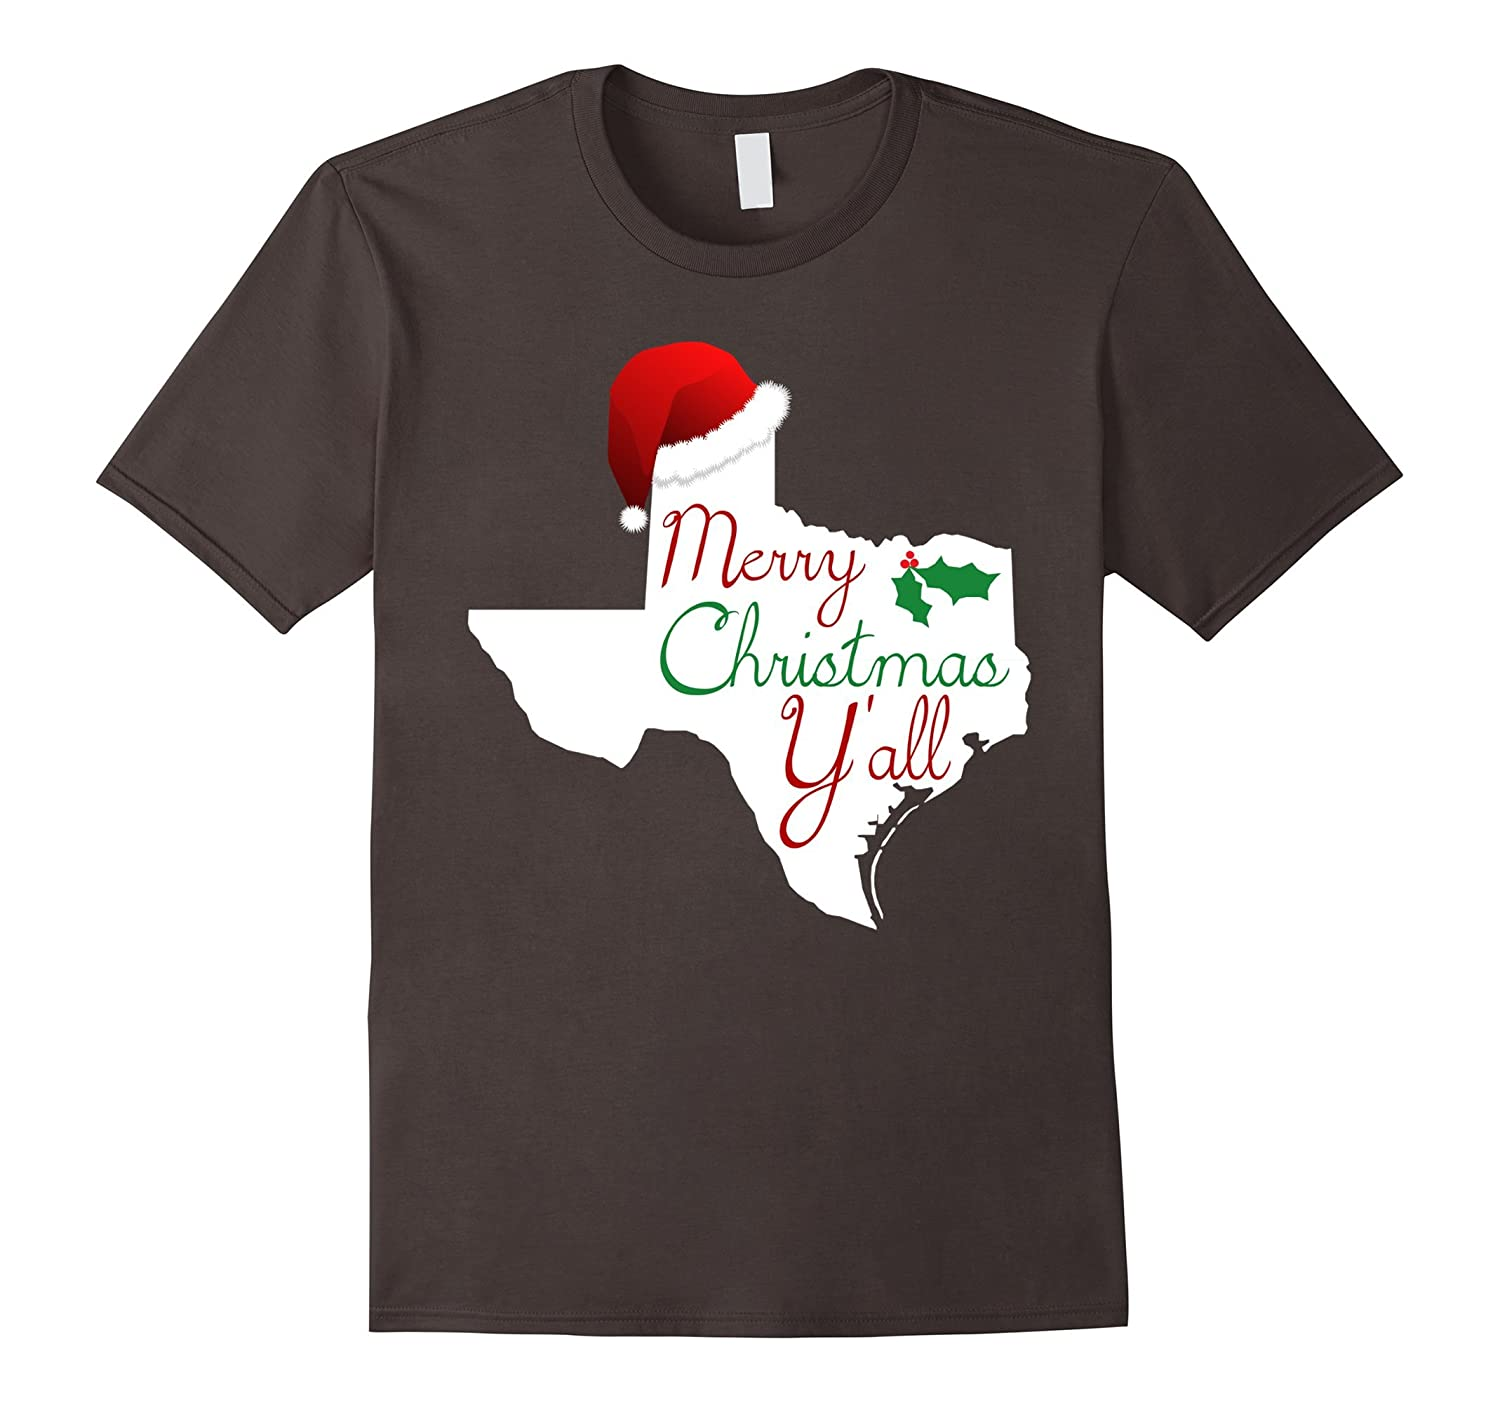 2fad043f Texas Christmas Shirt - Merry Christmas Y'all Texas XMas Tee-FL ...